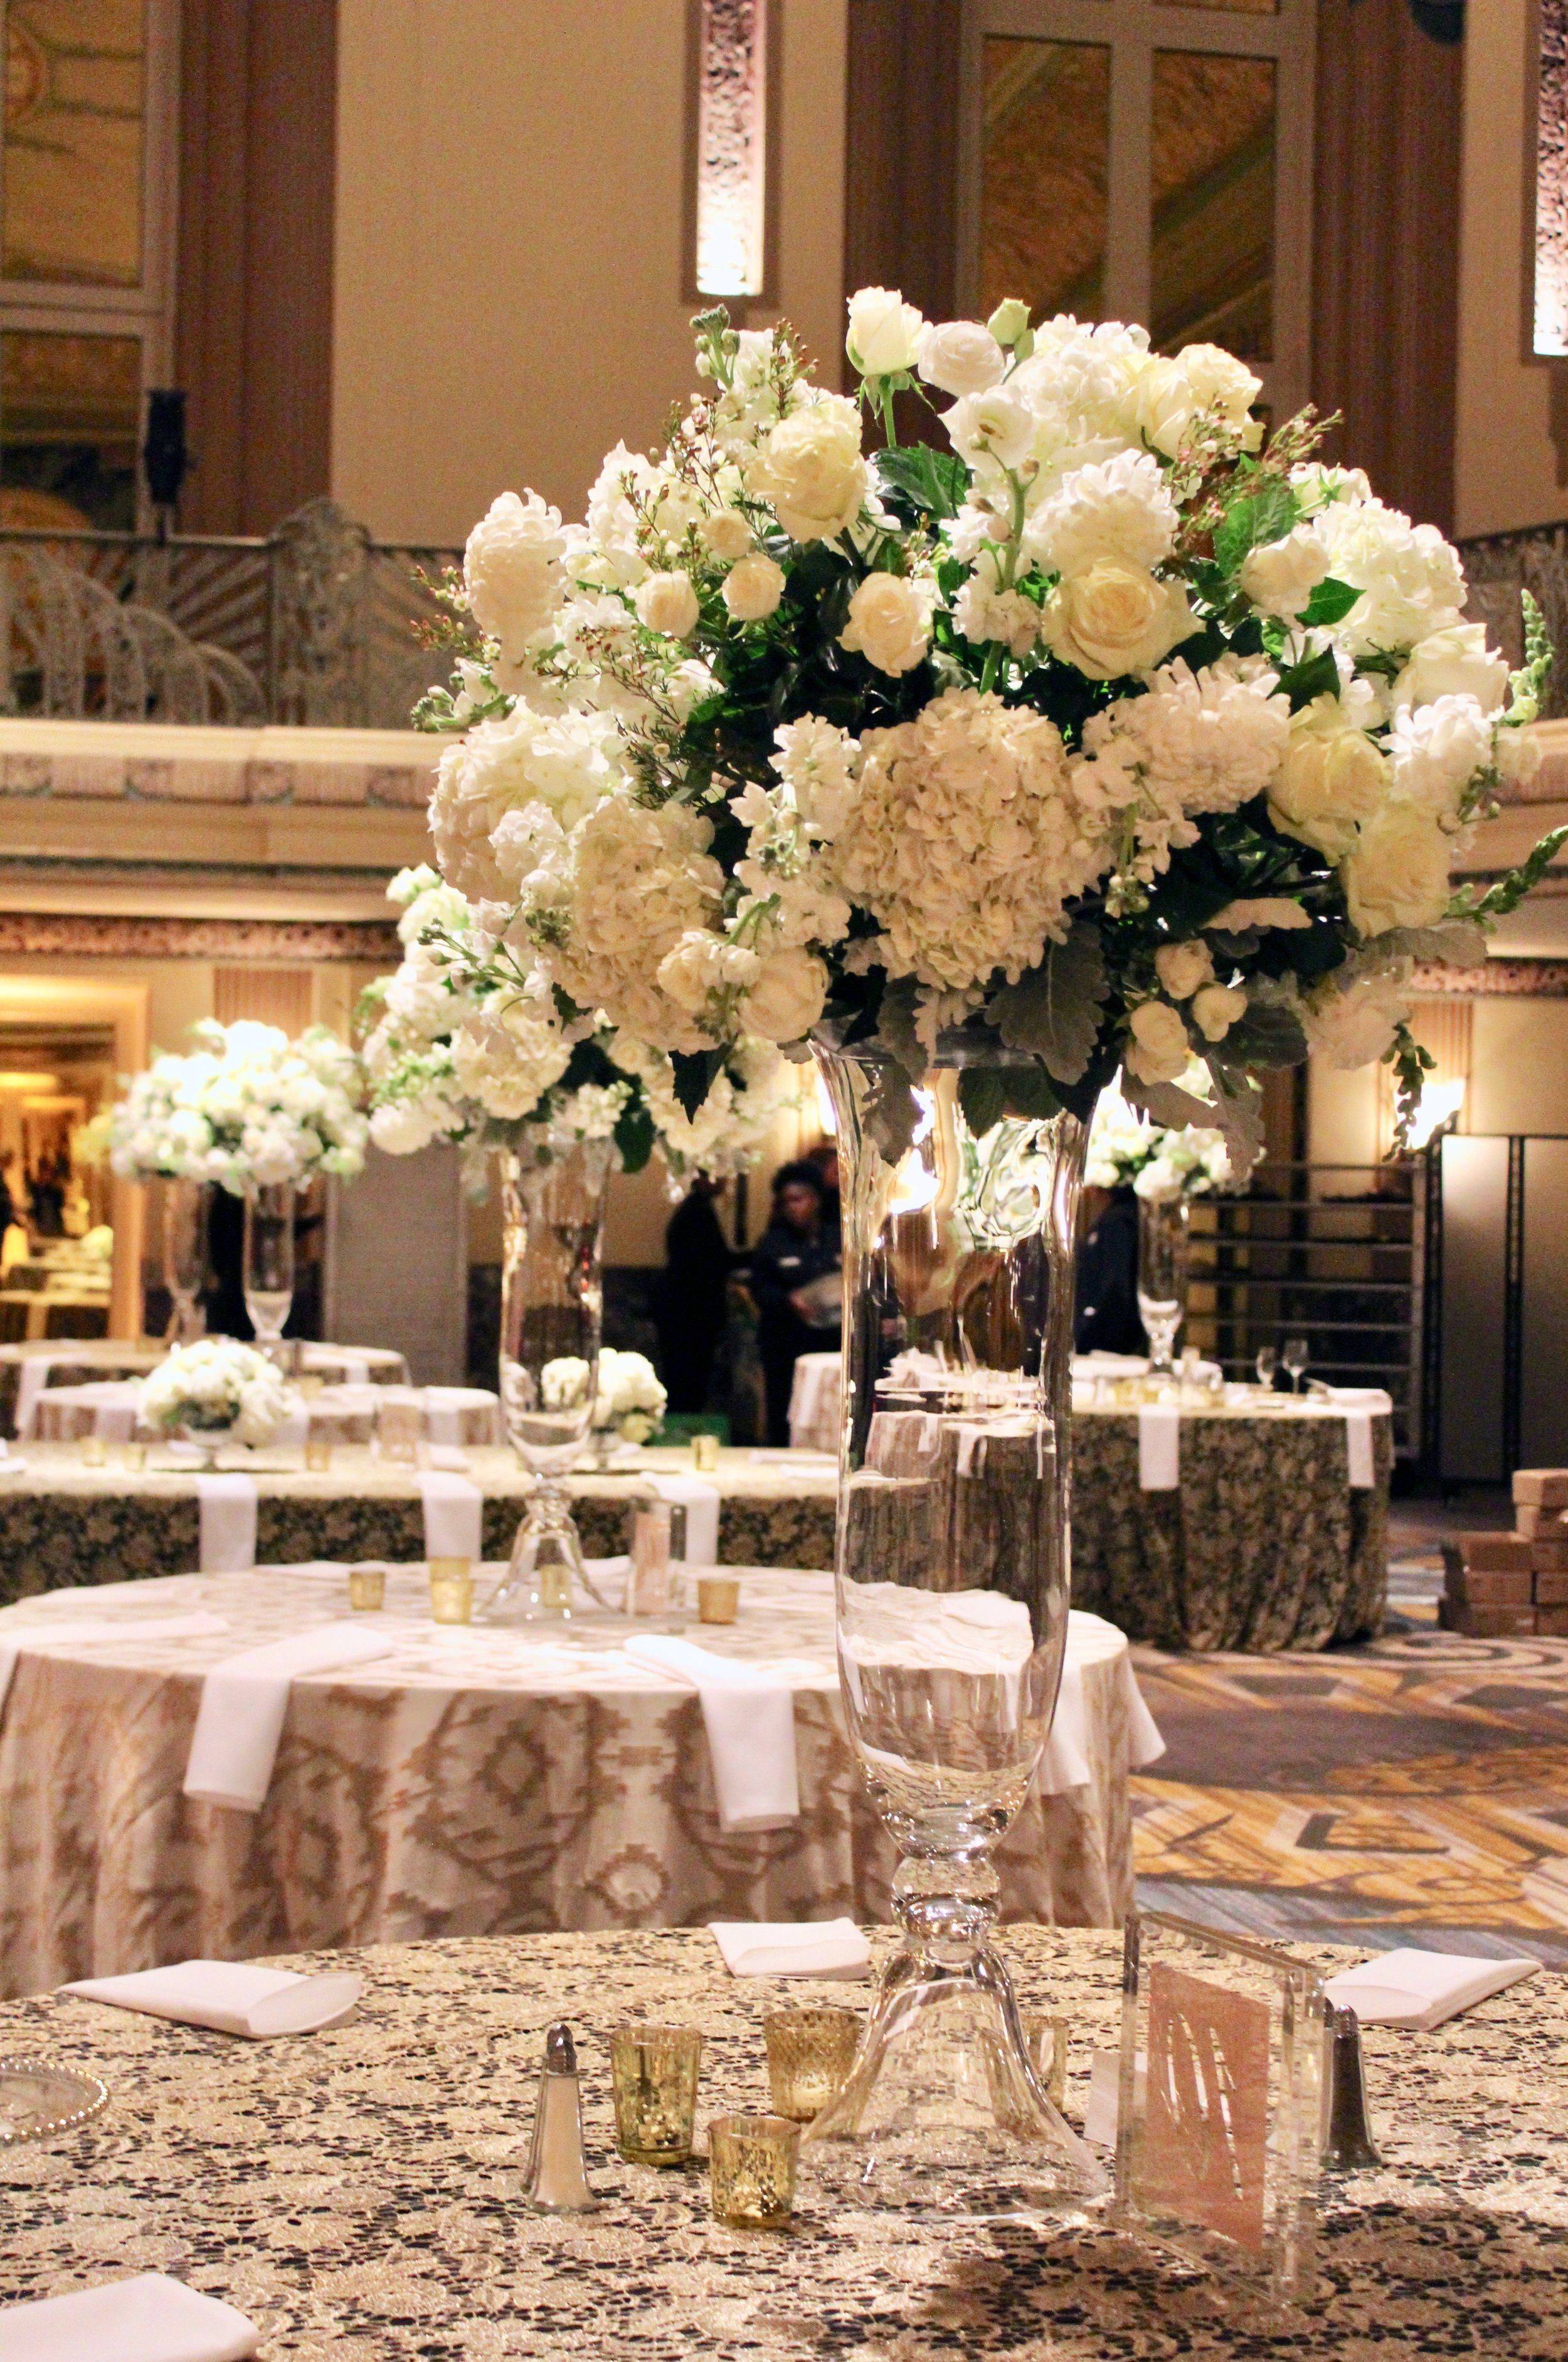 Hall of Mirrors wedding with green, white, and blush florals